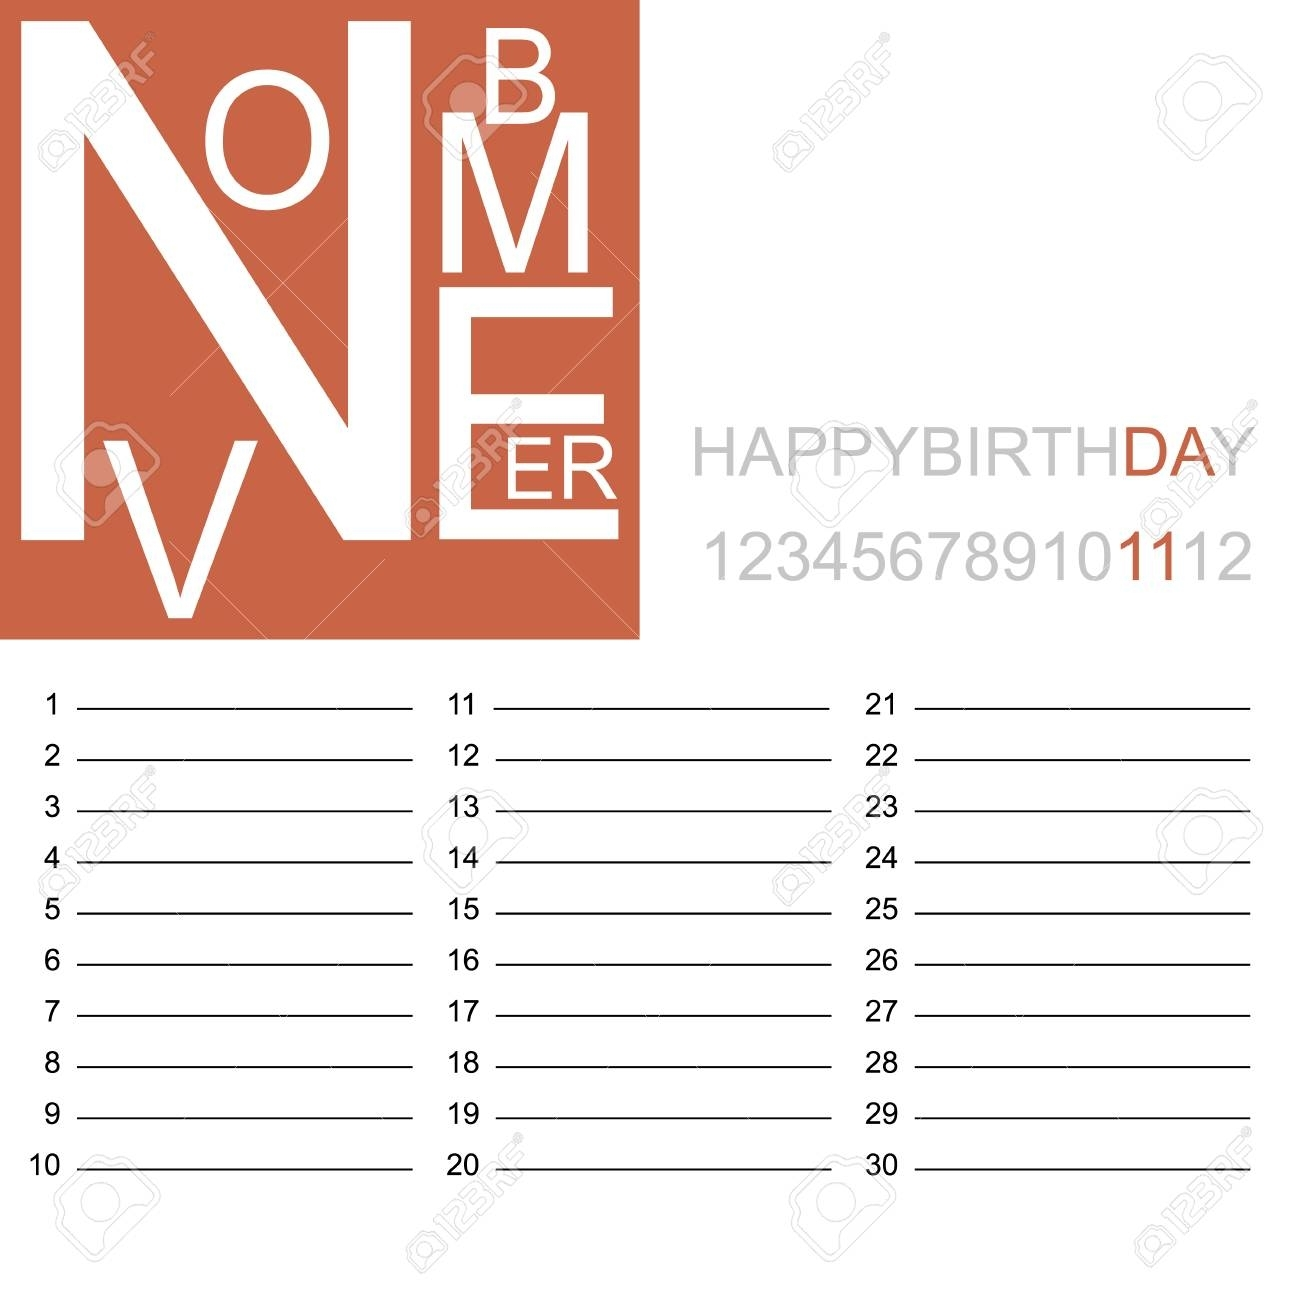 Jazzy Birthday Calendar November, Vector Illustration. Royalty Free throughout Free Images Of Birthday Calanders